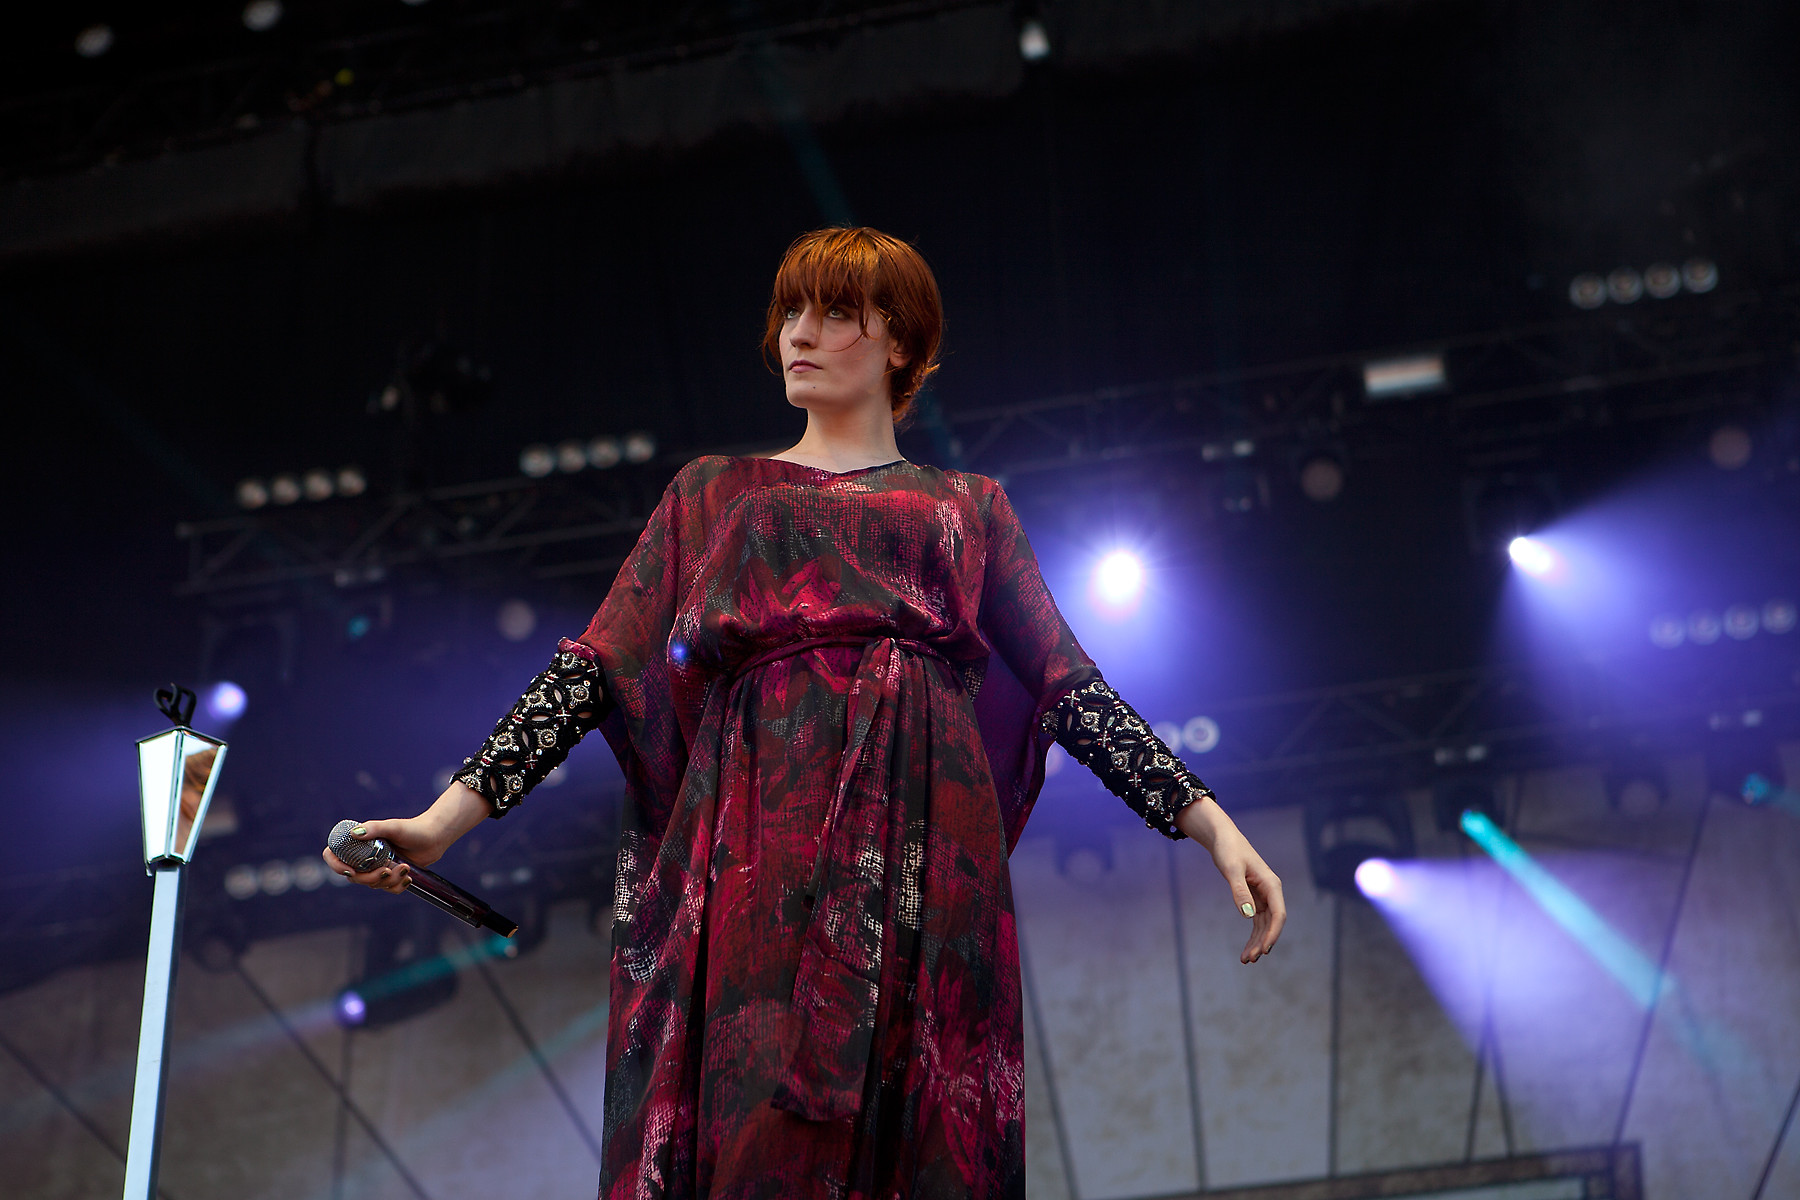 Florence and The Machine @ Lollapalooza 2012